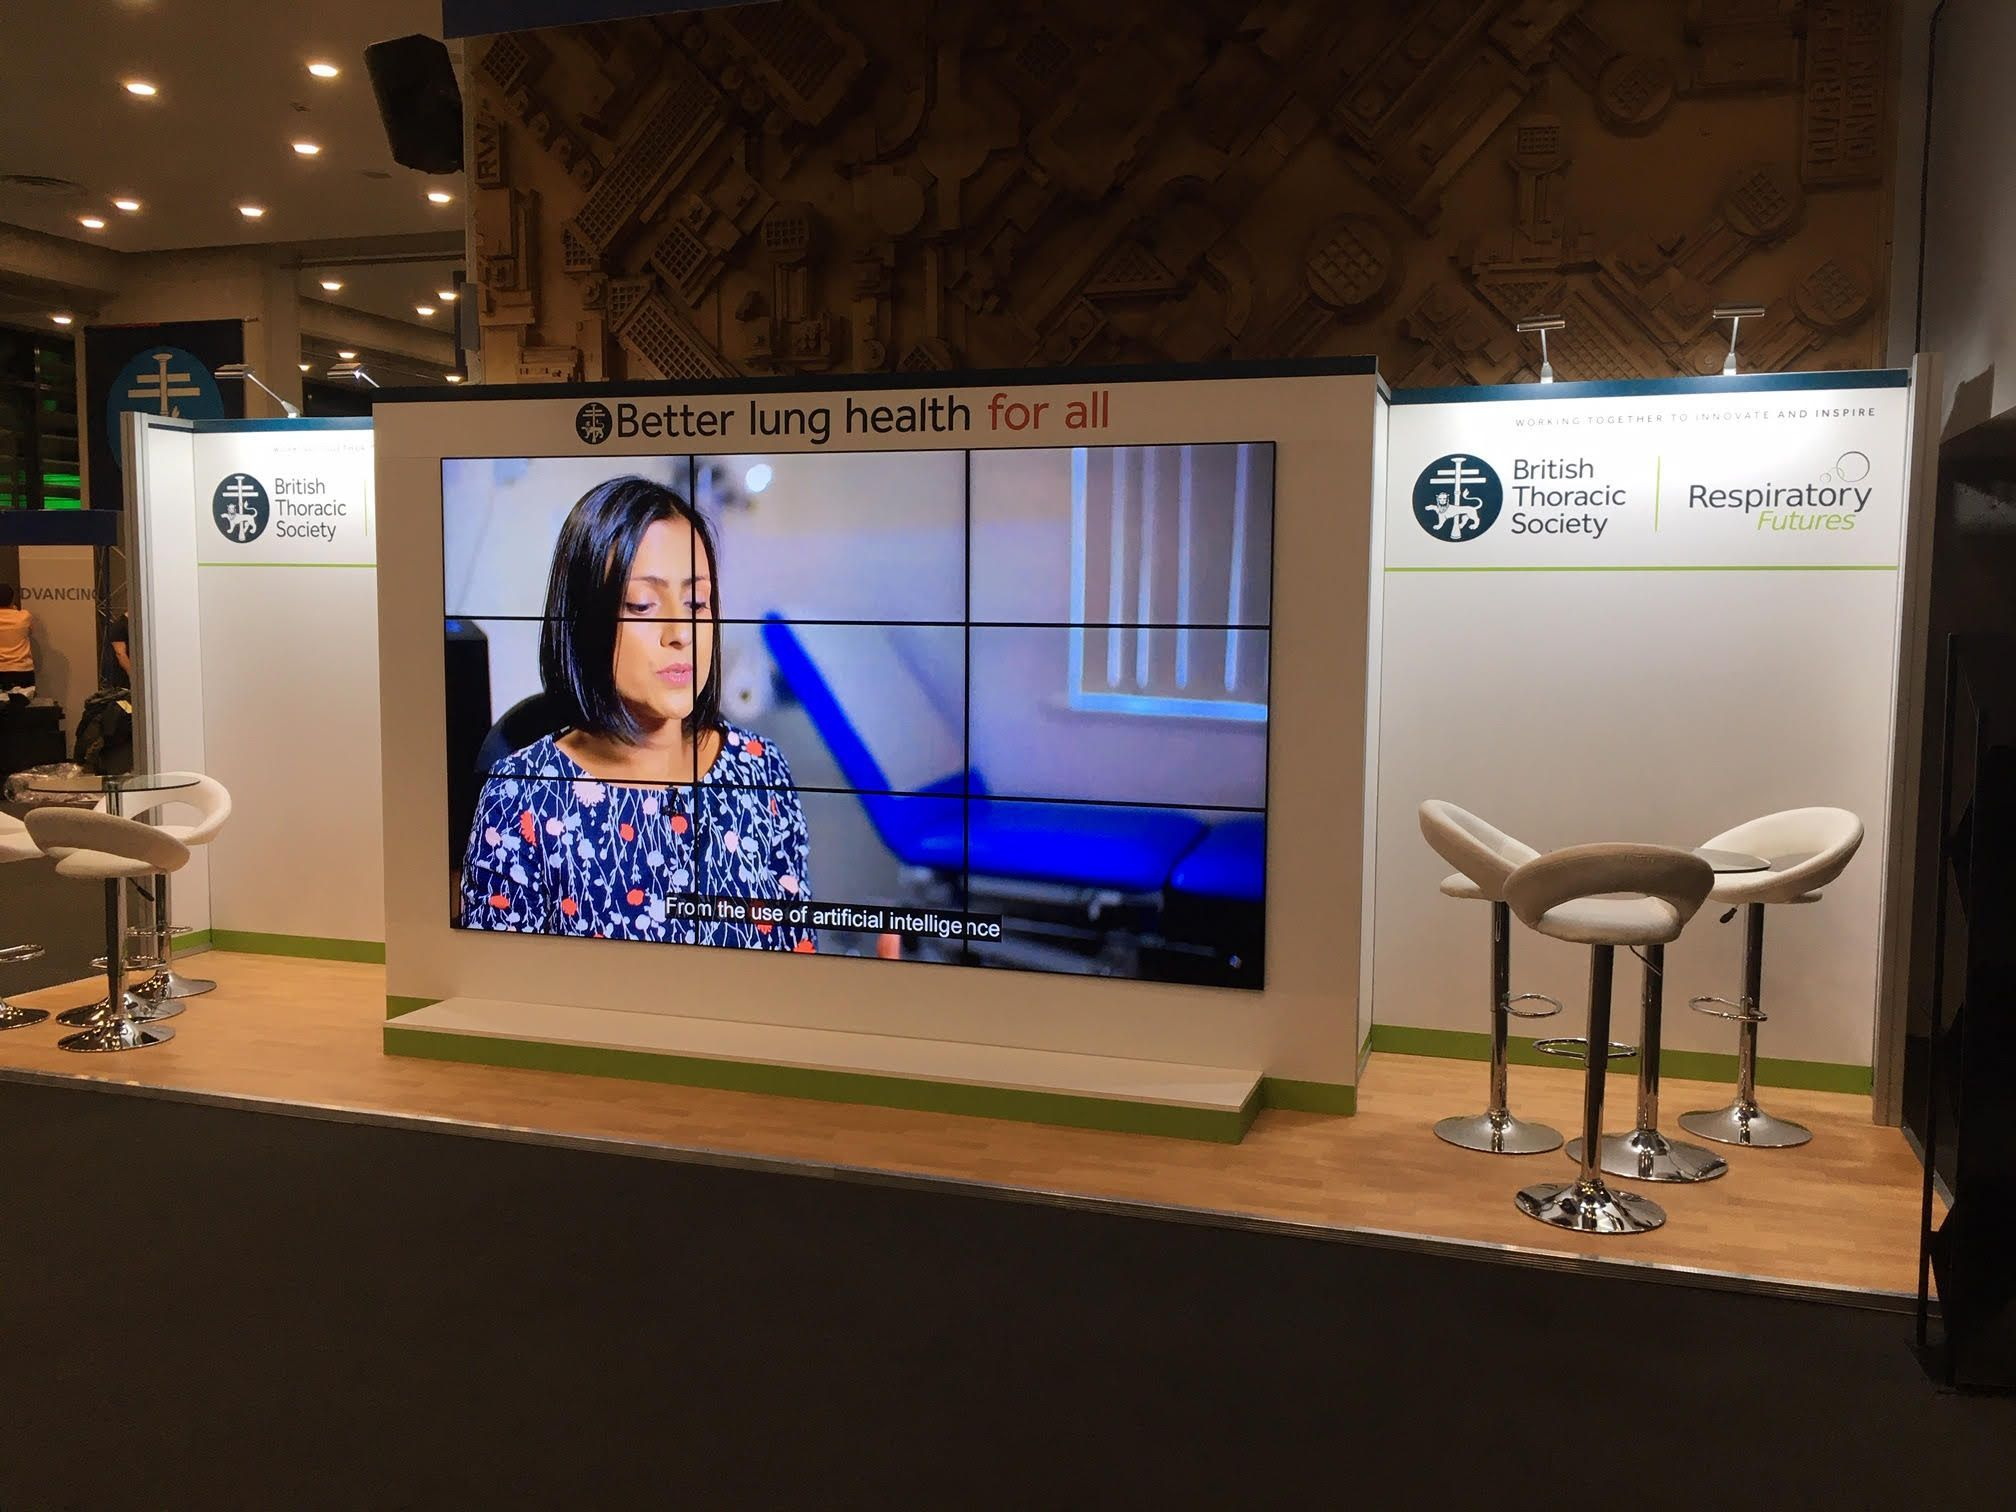 Here's our #exhibitionstand for the British Thoracic Society BTS Winter Meeting, which takes place in #London from December 4-6. We love working with them - it's a great event.   #BTSWinter2019 #exhibitiondesign #exhibitions #marketing